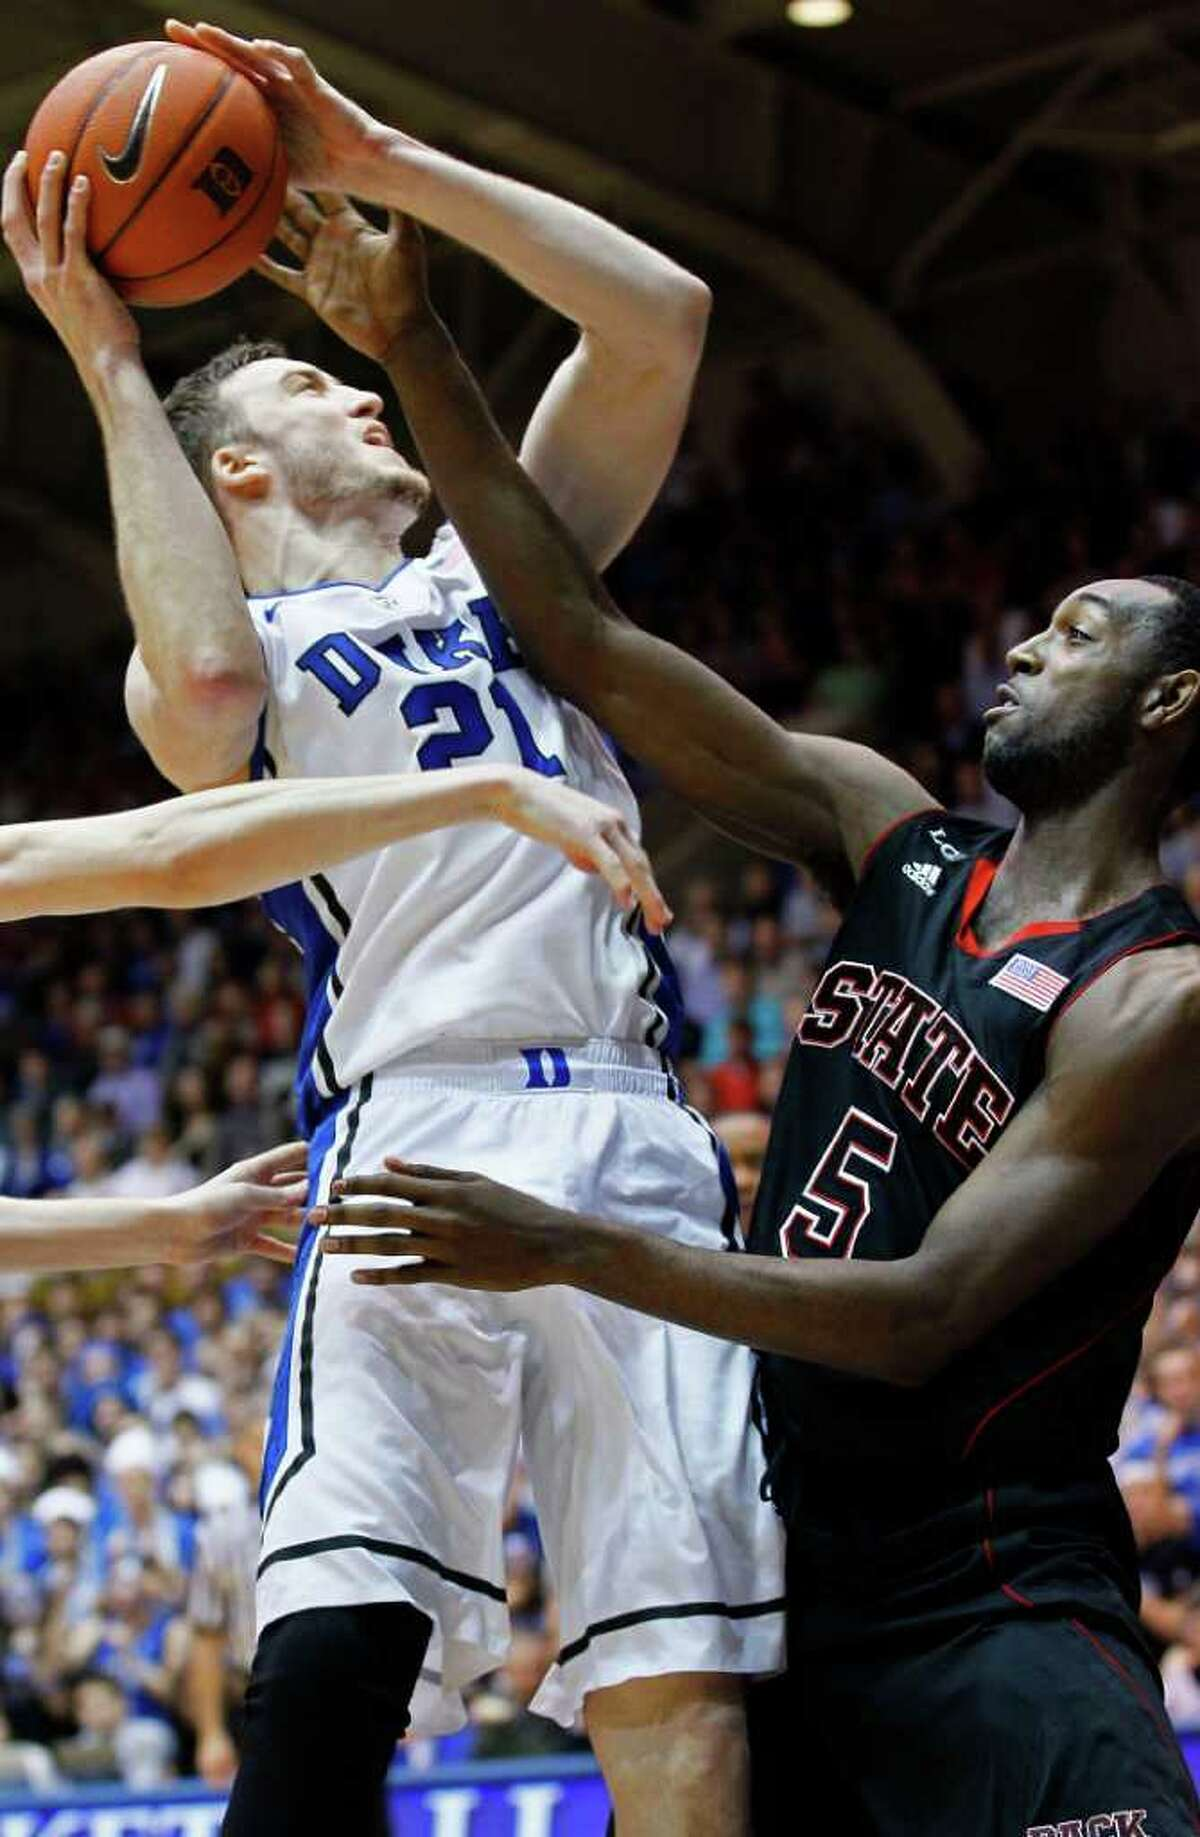 Duke's Miles Plumlee (21) is pressured by North Carolina State's C.J. Leslie (5)during the first half of an NCAA college basketball game in Durham, N.C., Thursday, Feb. 16, 2012. (AP Photo/Gerry Broome)